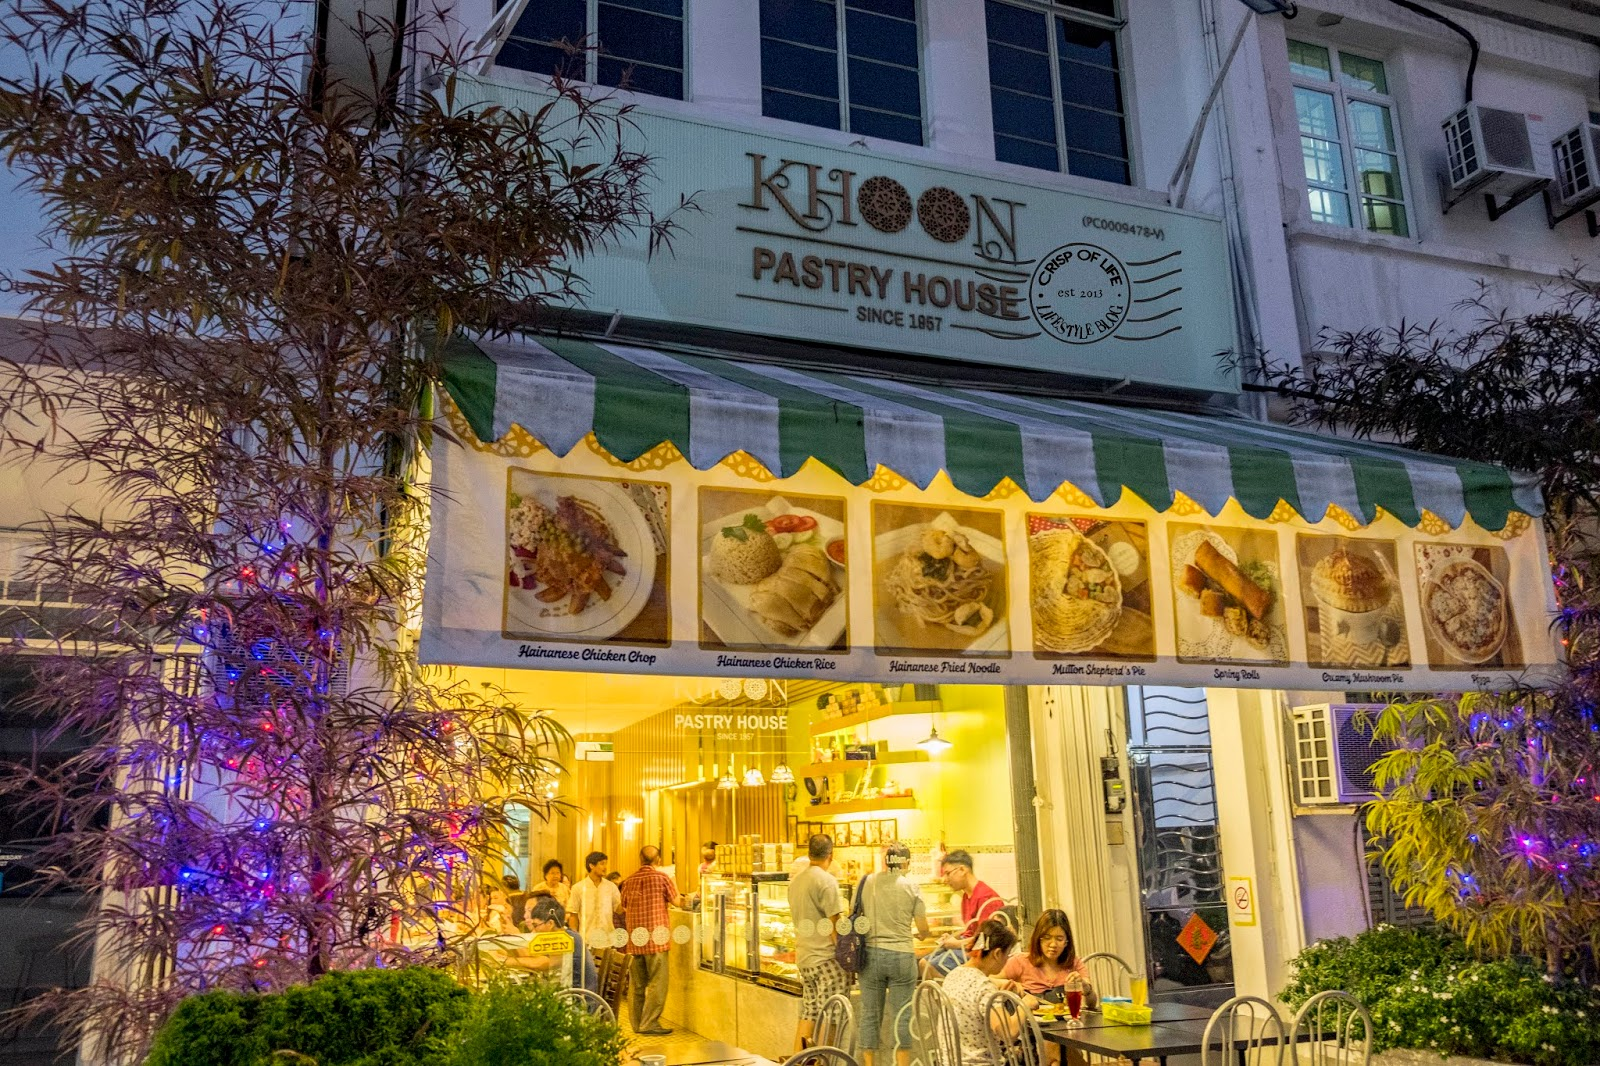 Khoon Pastry House - An Authentic Hainanese Restaurant @ Jalan Argyll, Penang